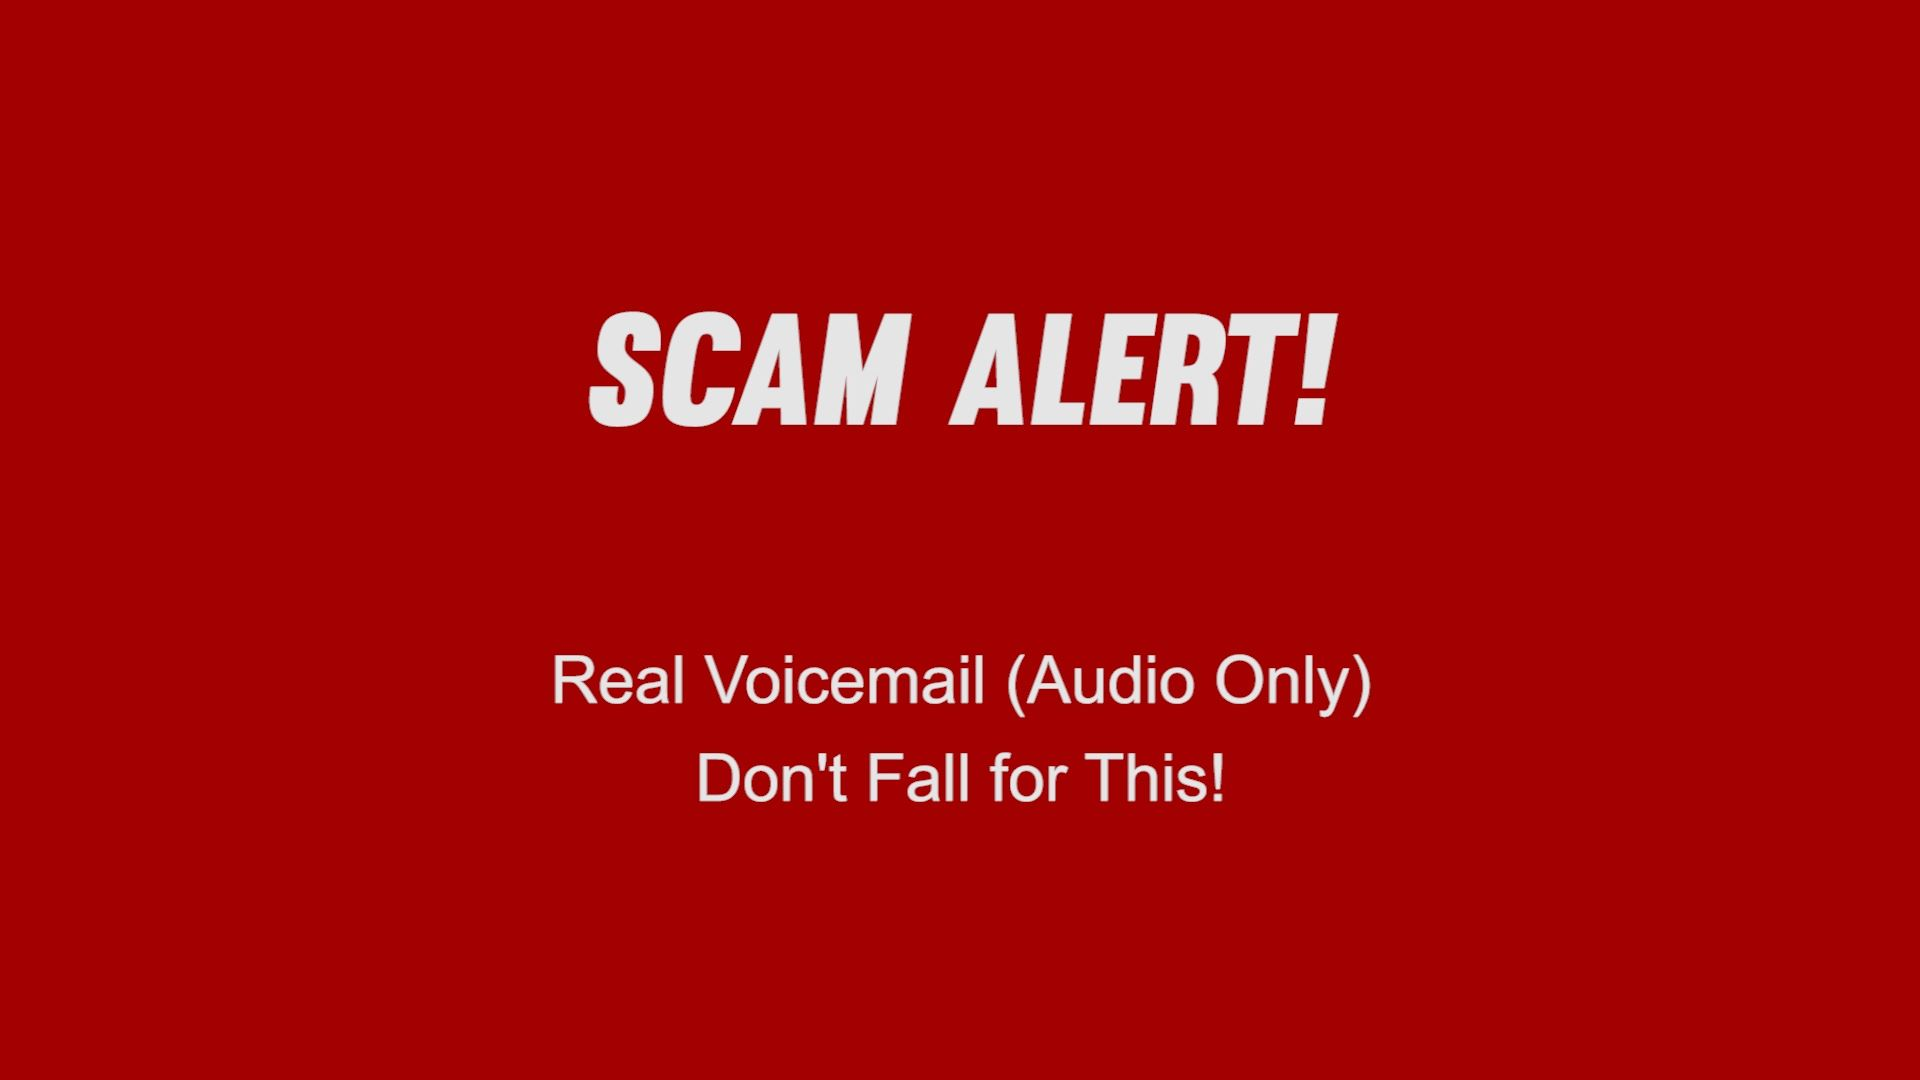 Scam Alert graphic